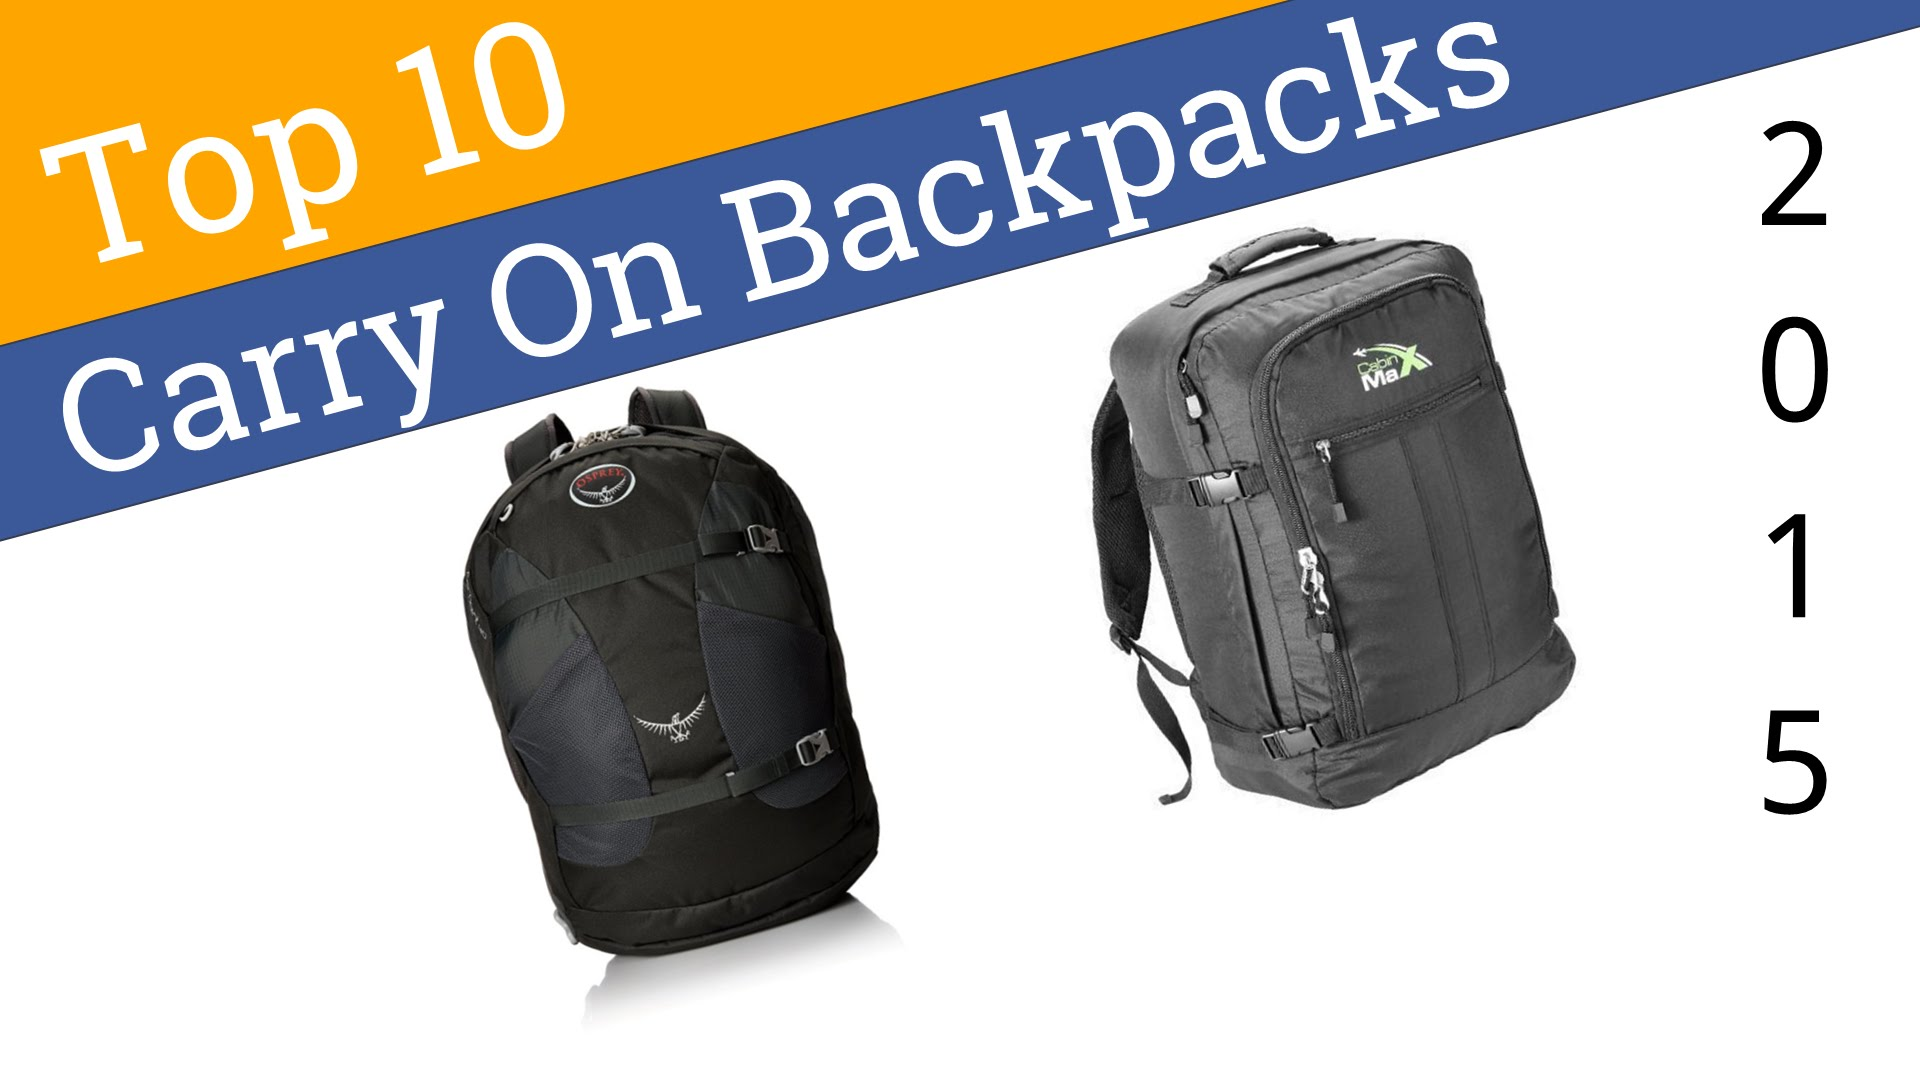 Best Carry On Backpack For Travelling kWwl1SeB